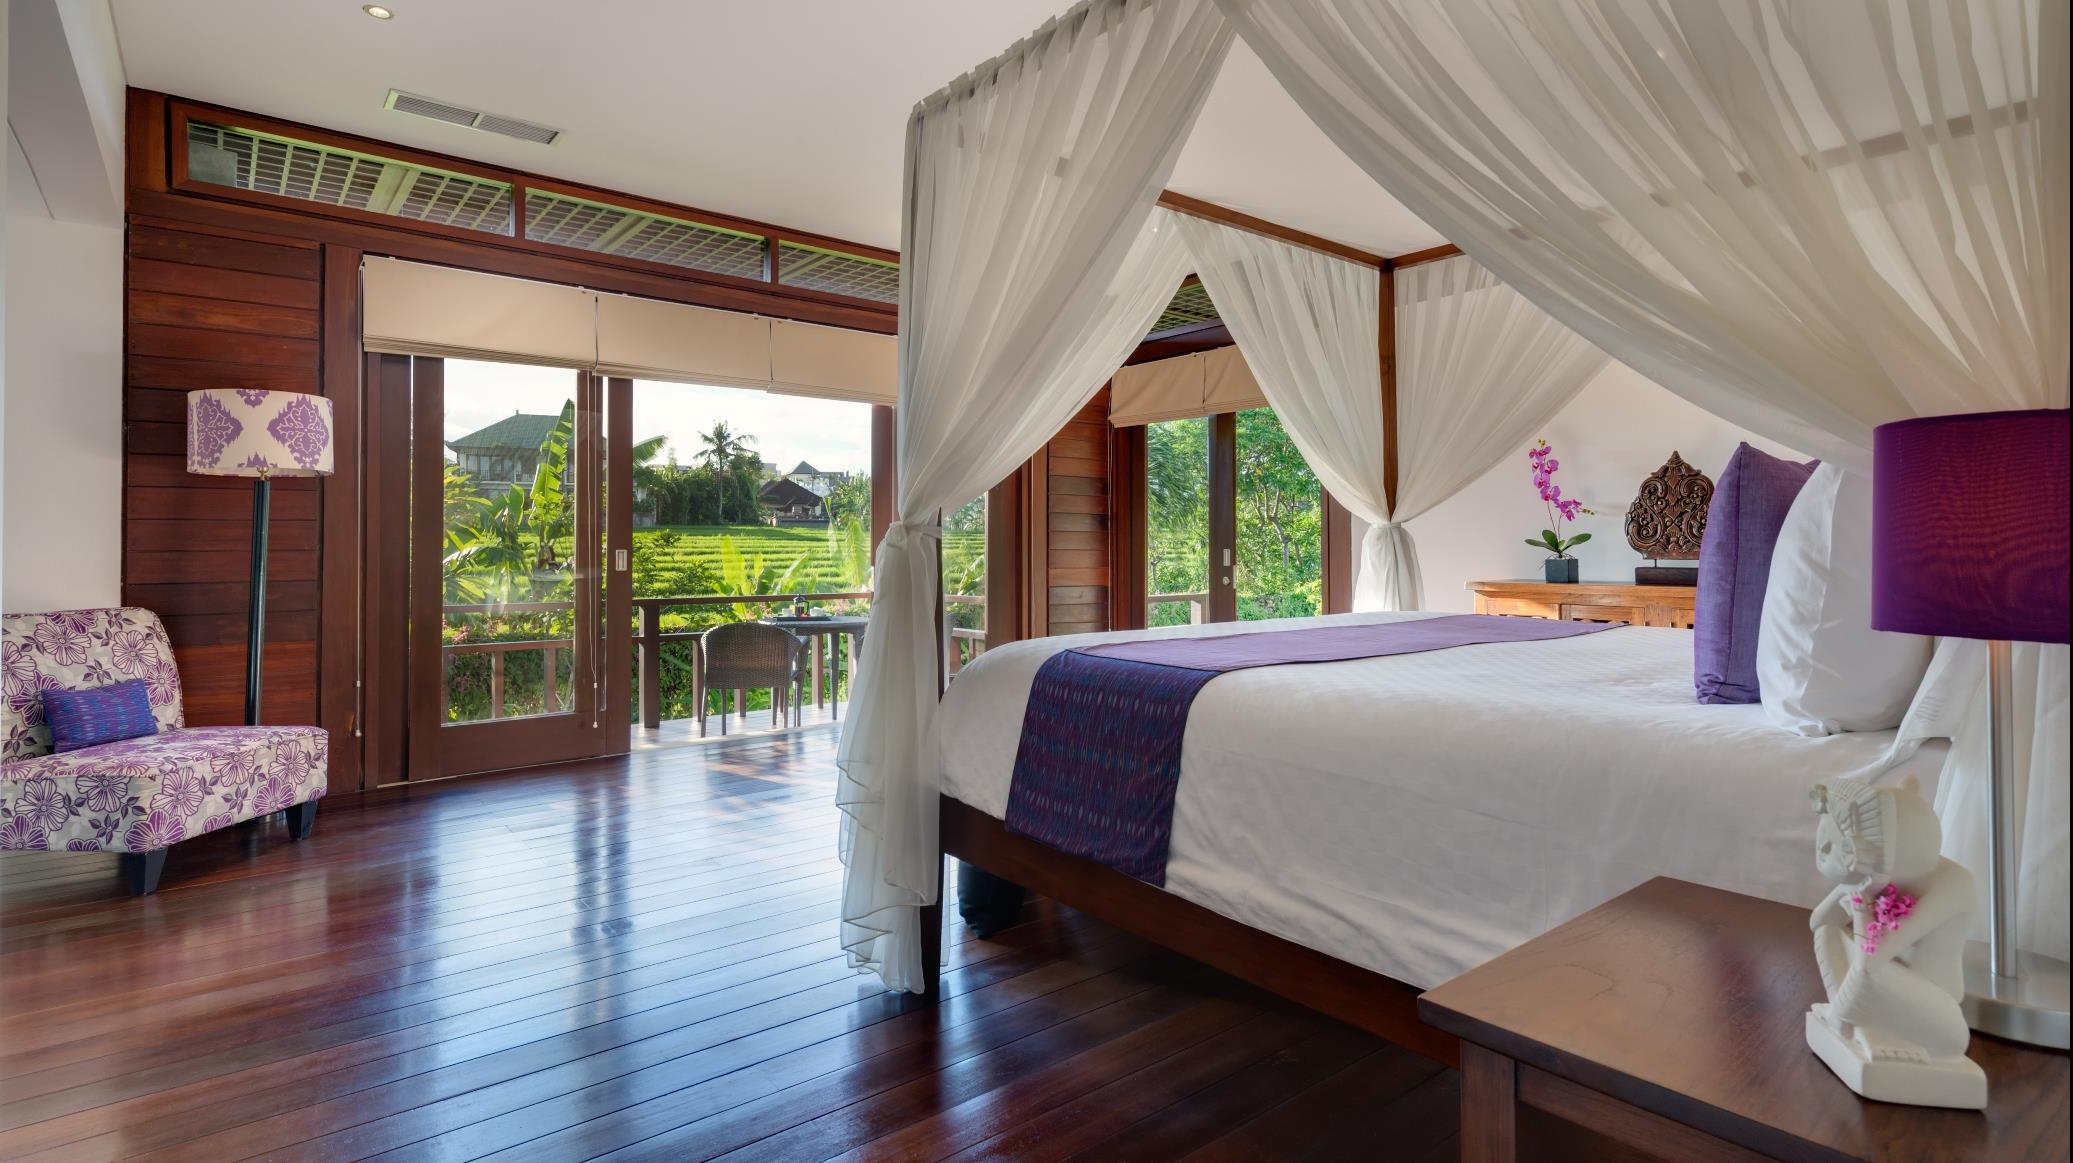 Bedroom and Balcony - Villa Bendega Nui - Canggu, Bali